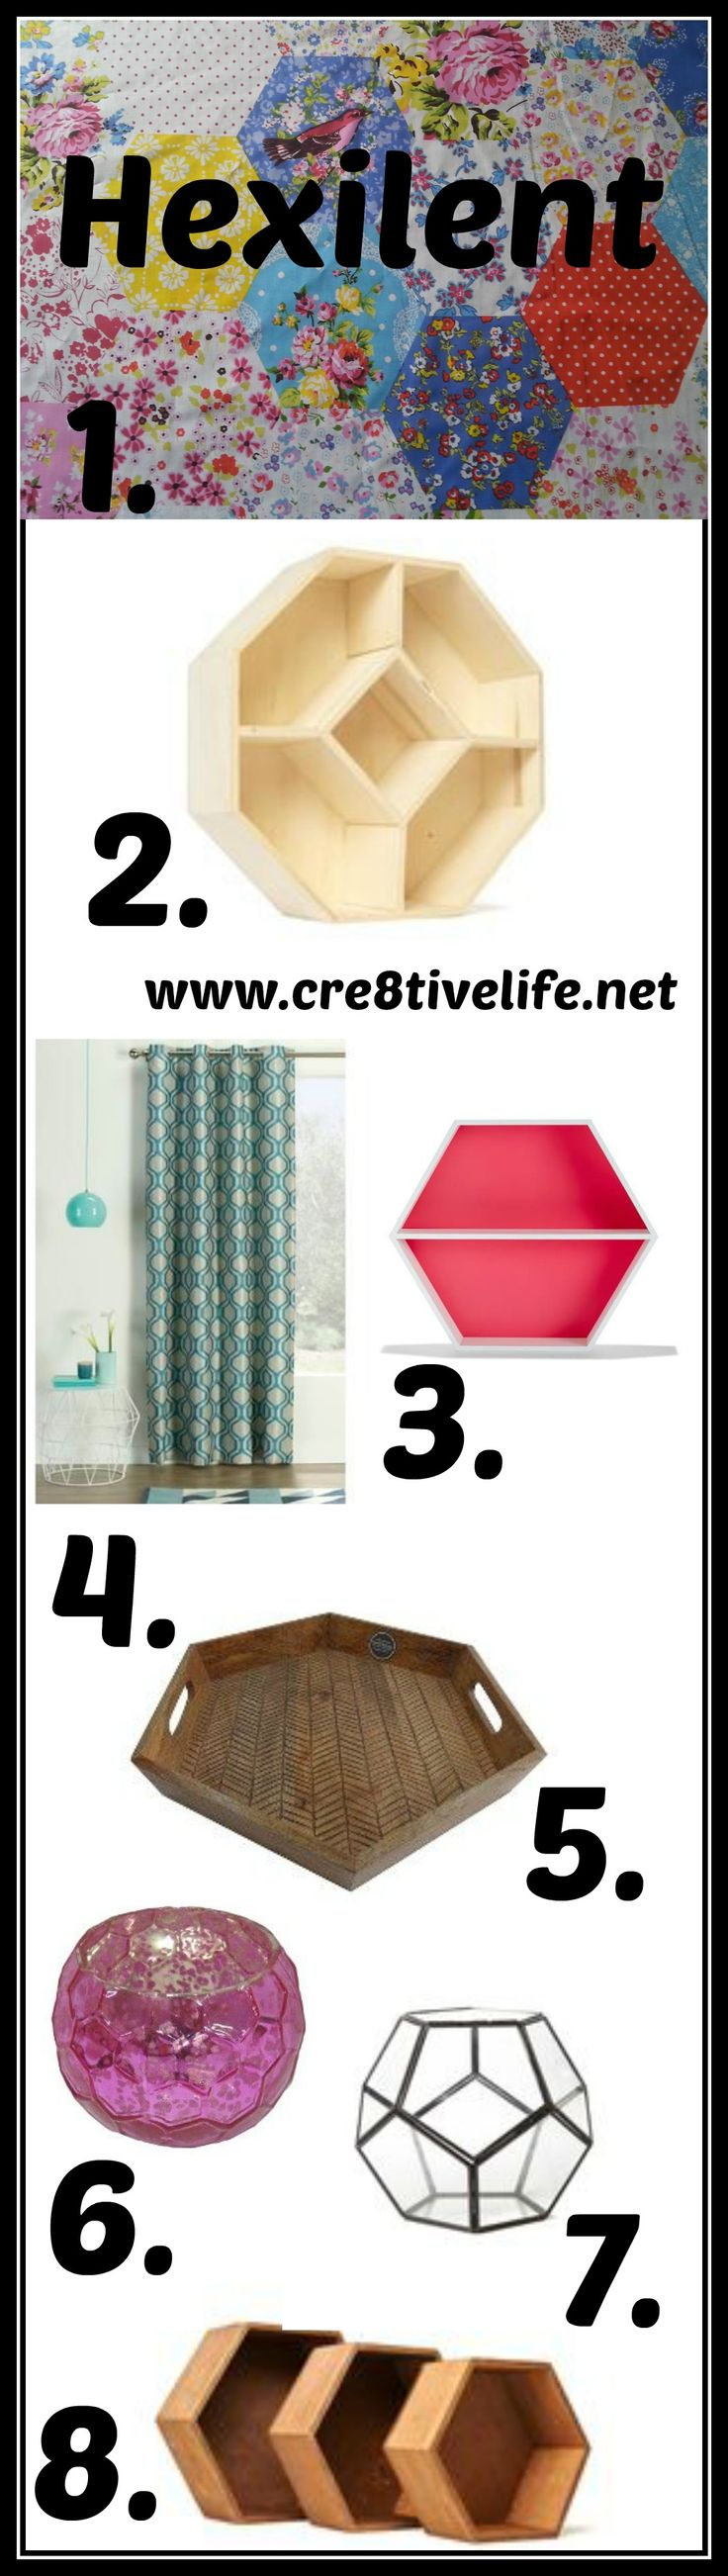 1. Country  garden  fabric  from  Spotlight   2. Large Hexe Wall Storage from Typo 3. Hexagon Shadow Box from Kmart   4. Belmondo Hexagon Eyelet Curtain  from  Spotlight,  available in lime, aqua  &  charcoal   5. Threshold™Burned Wood Tray from  Target 6. Mercury Glass Votive Holder -Threshold™ from  Target, available  in  aqua, pink  &  blue 7. Copper hexe terrarium from Typo,  available in black and copper 8.  Mini Hexe Shadow Box Set 3 from Typo